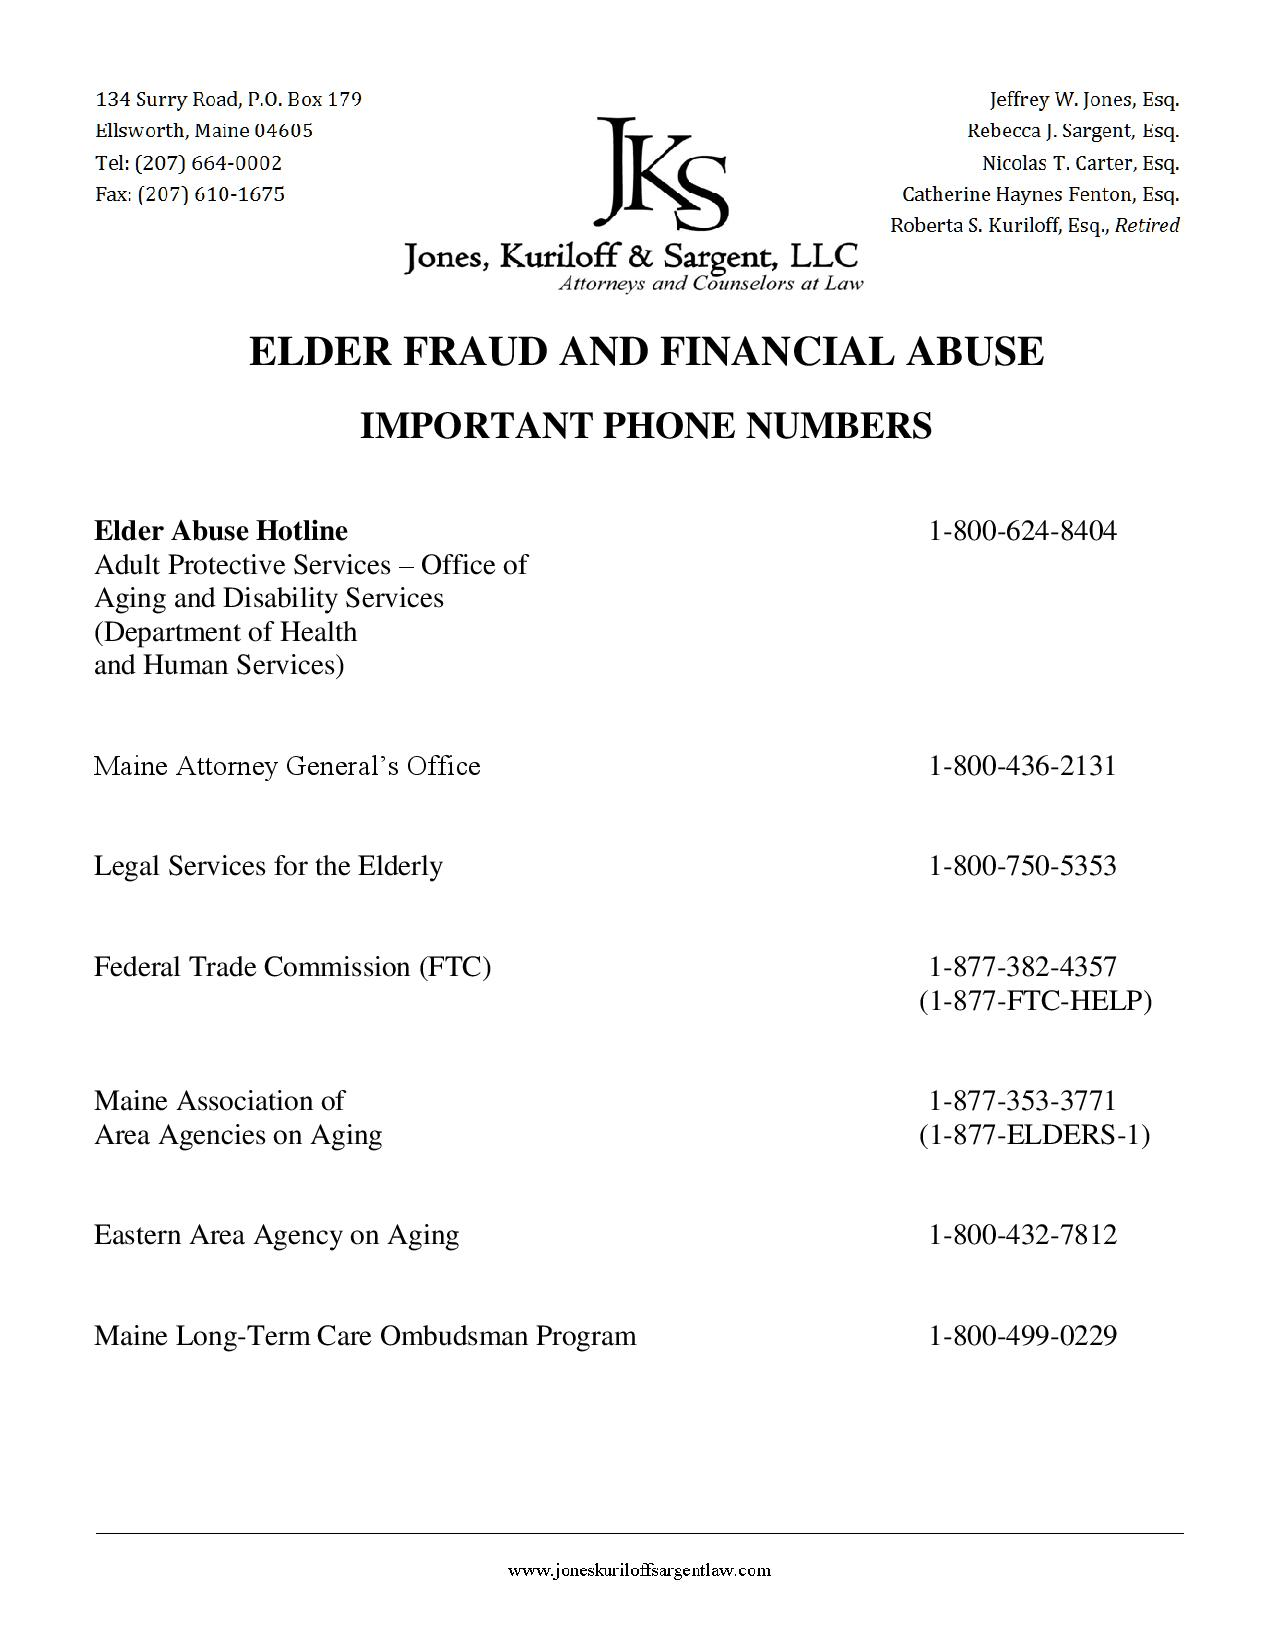 Elder Abuse Phone Numbers 20160519-page-001